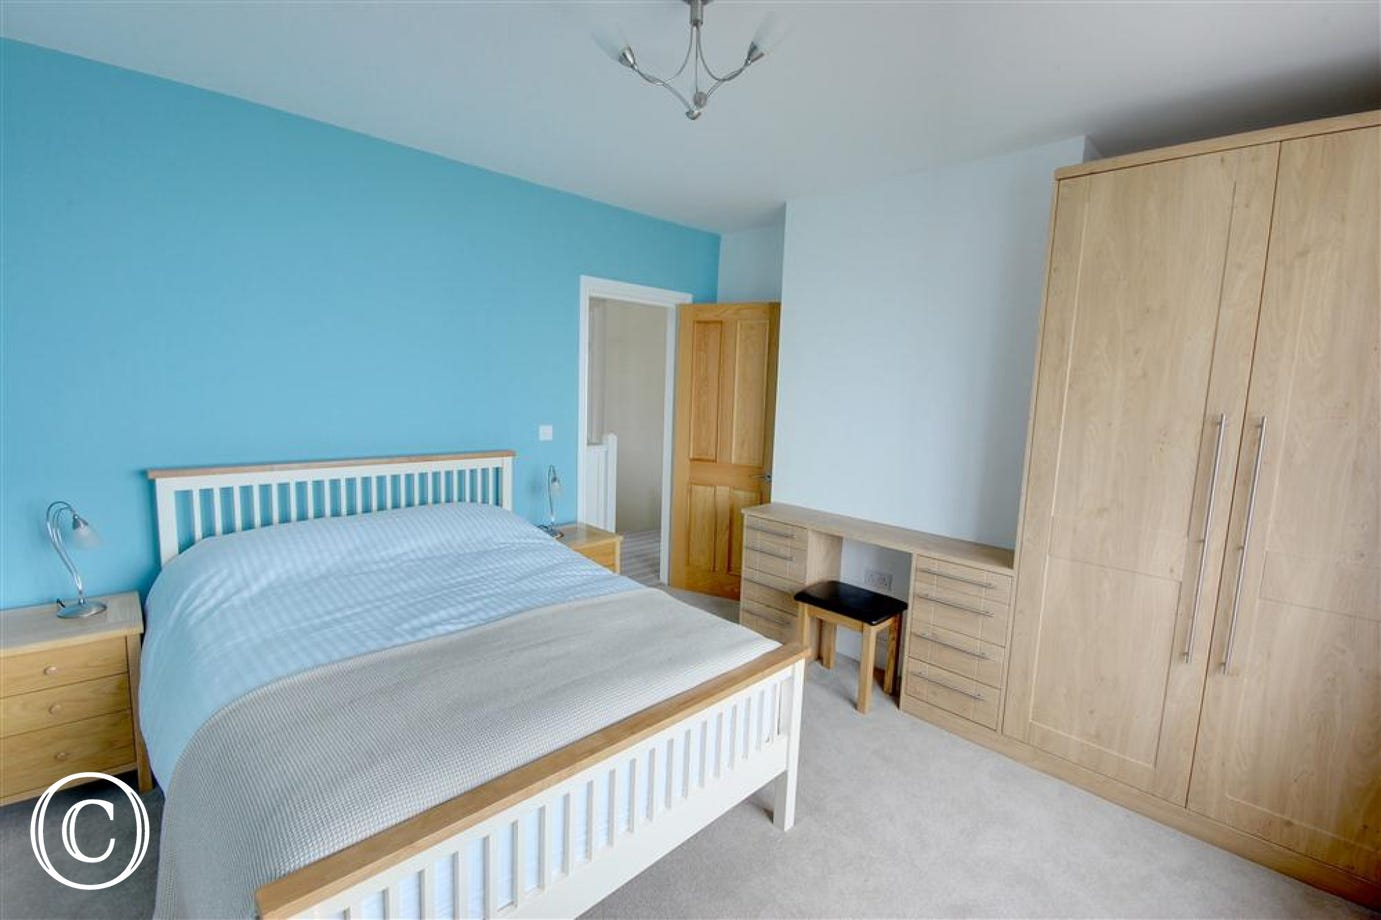 Spacious second double bedroom with plenty of storage in the fitted units.